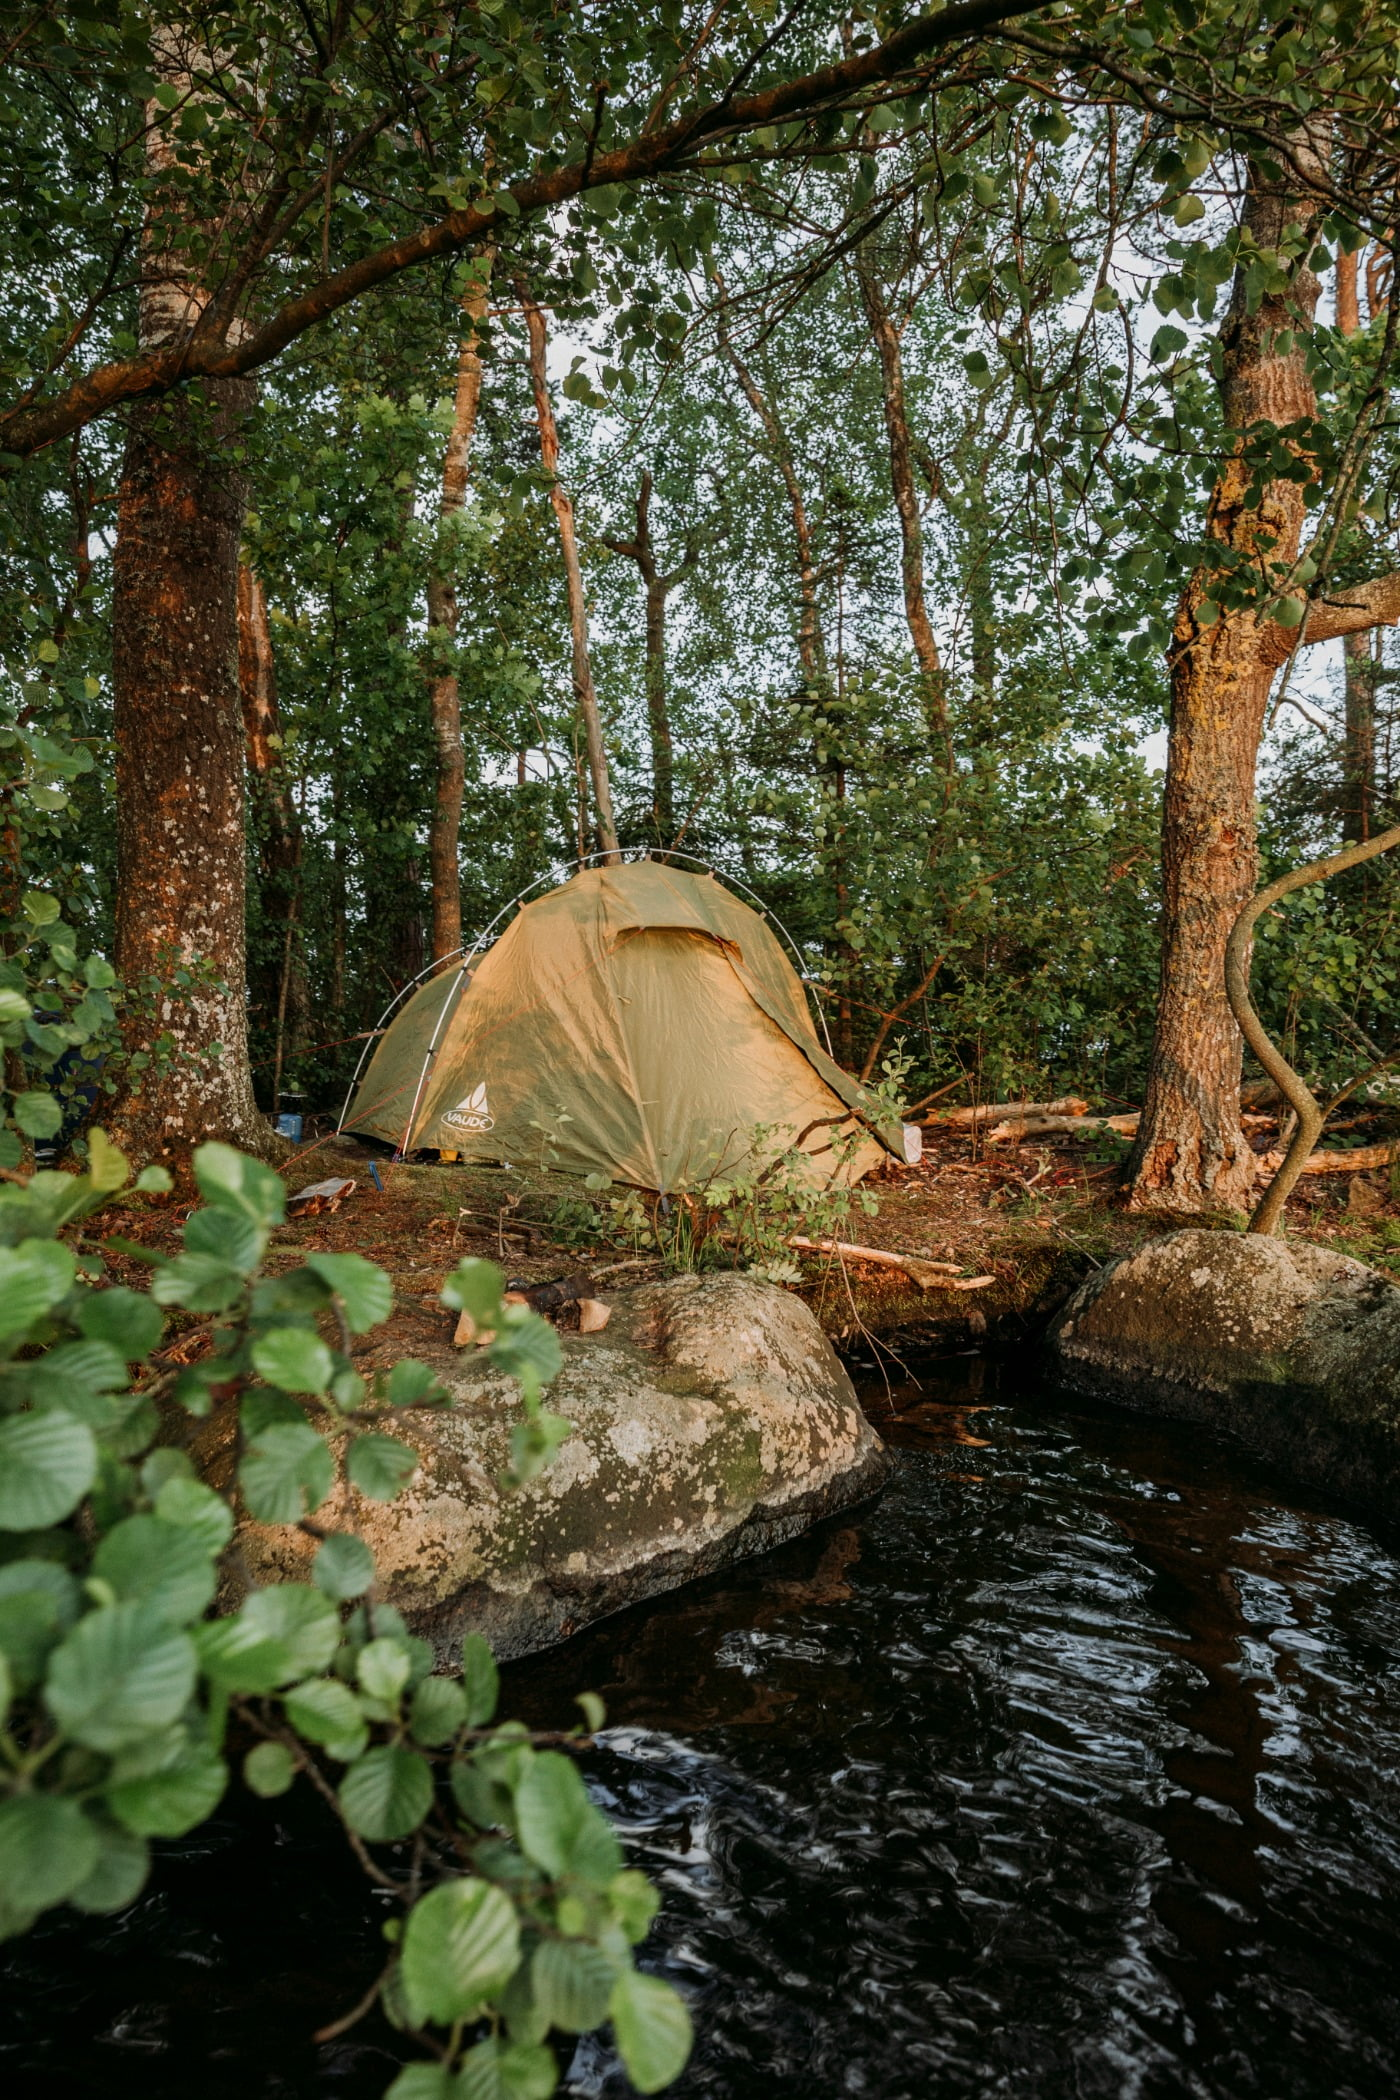 Plant community, Natural landscape, Water, Tree, Wood, Tent, Sunlight, Trunk, Watercourse